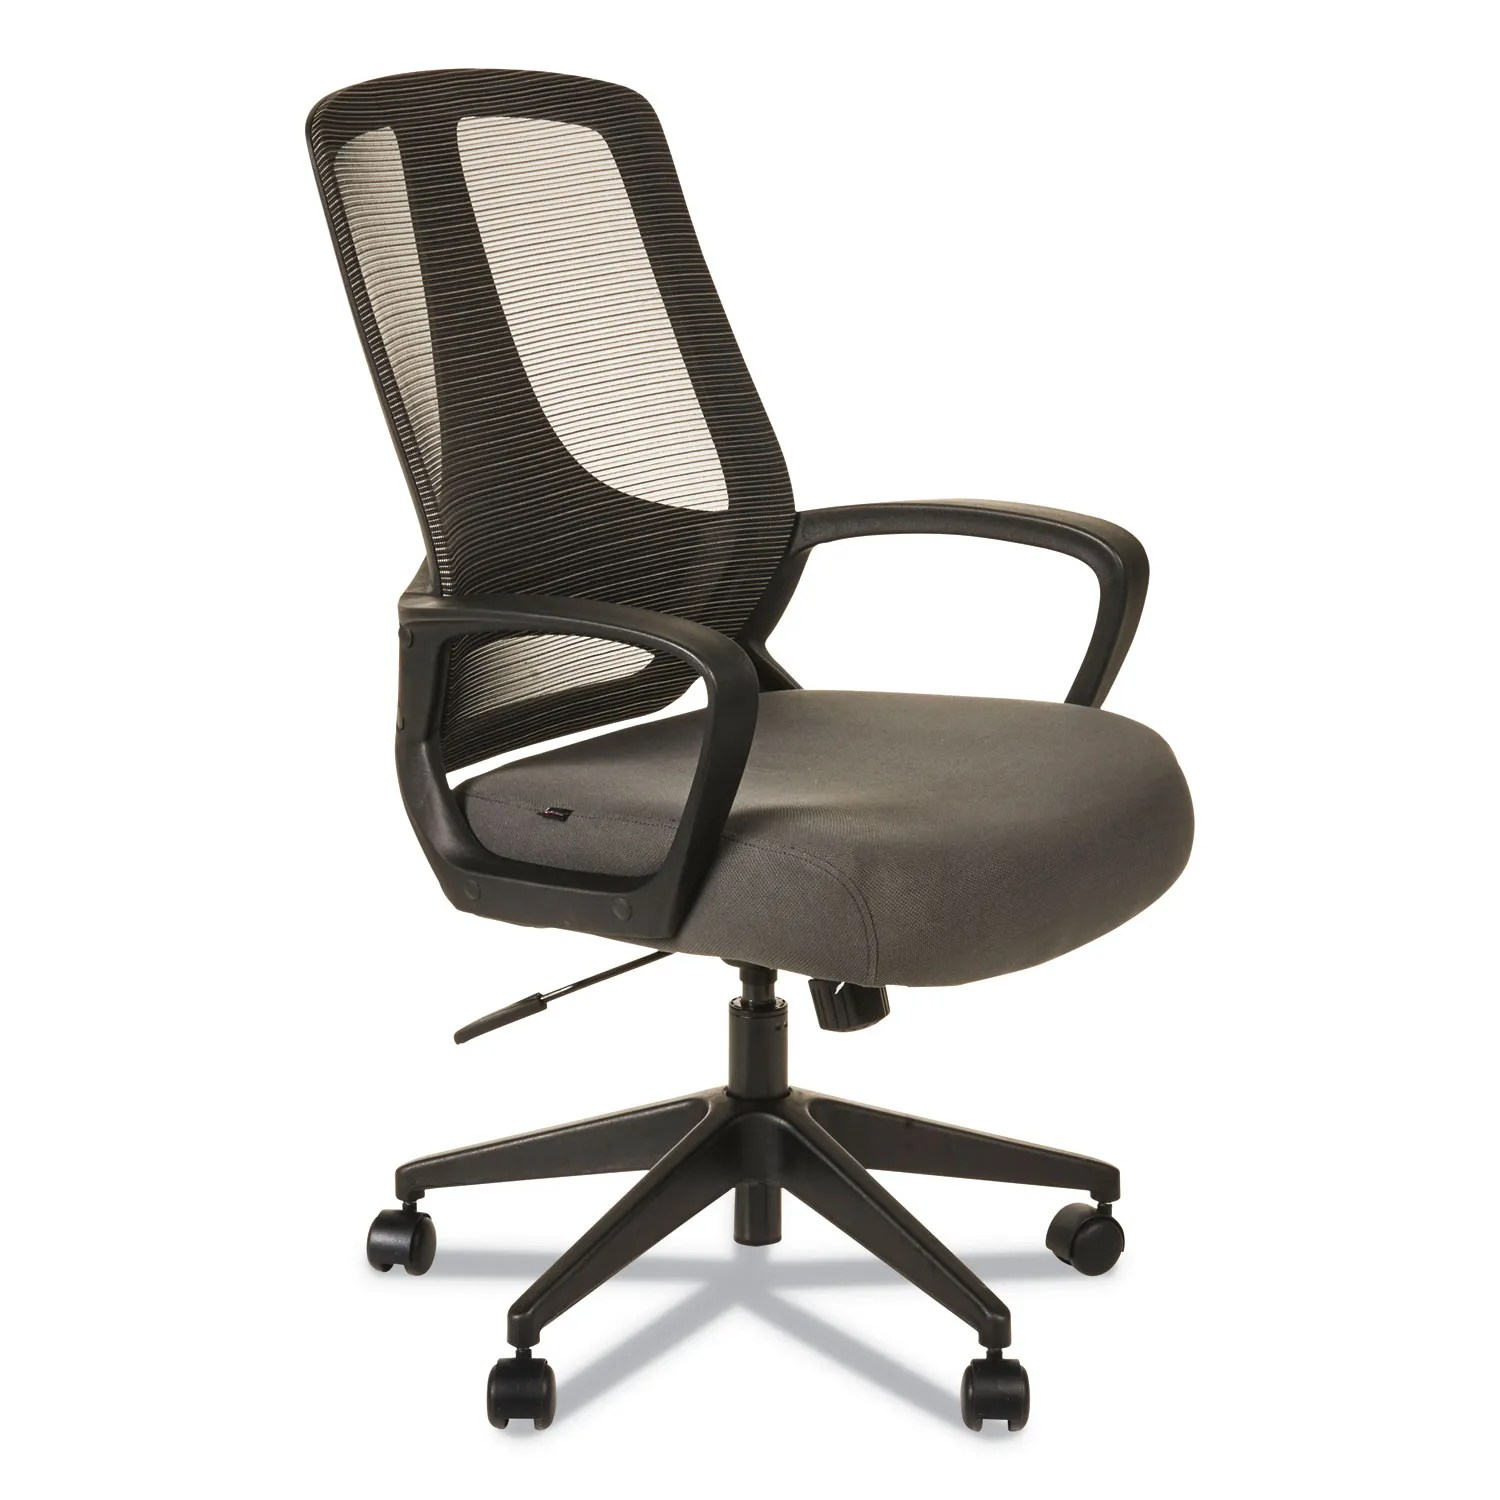 Alera Office Chairs Alera Mb Series Mesh Mid Back Office Chair Gray Black